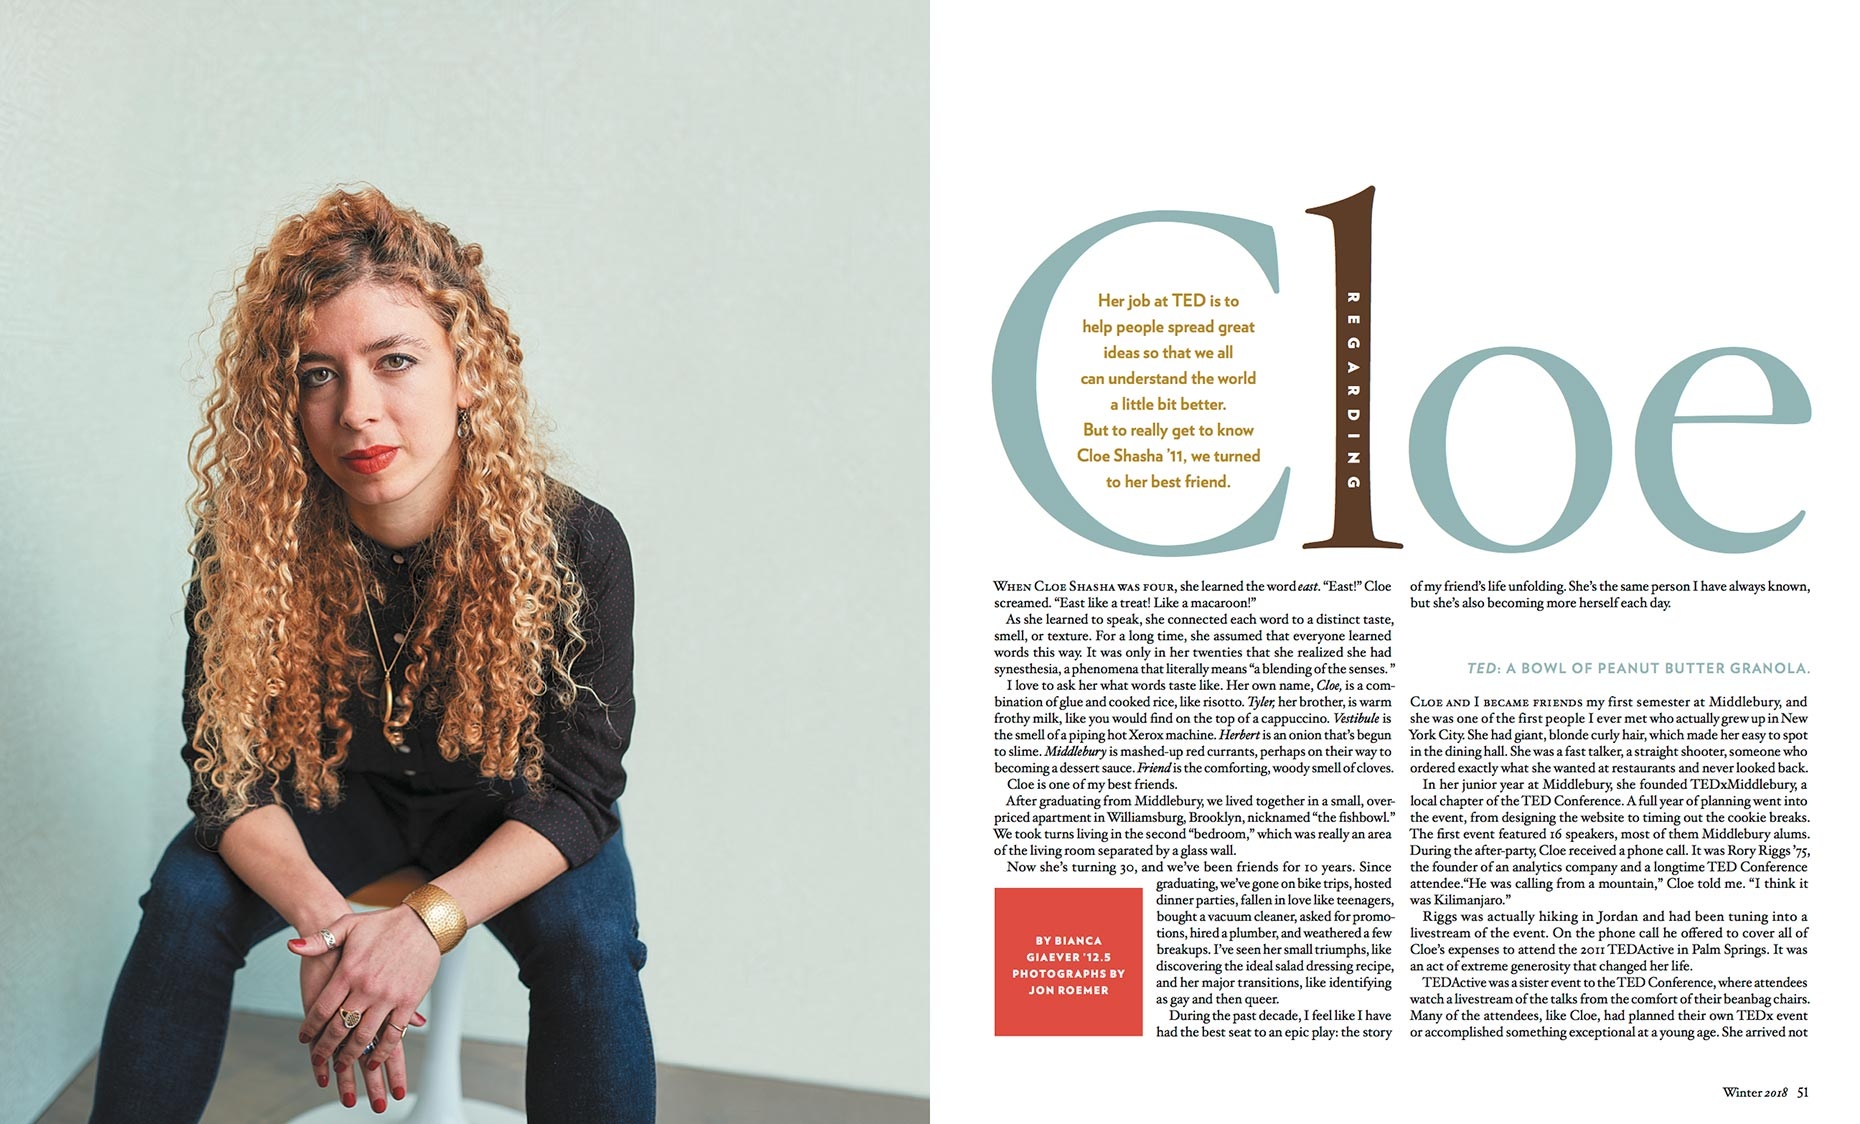 Cloe Shasha - TED Executive - Middlebury Magazine